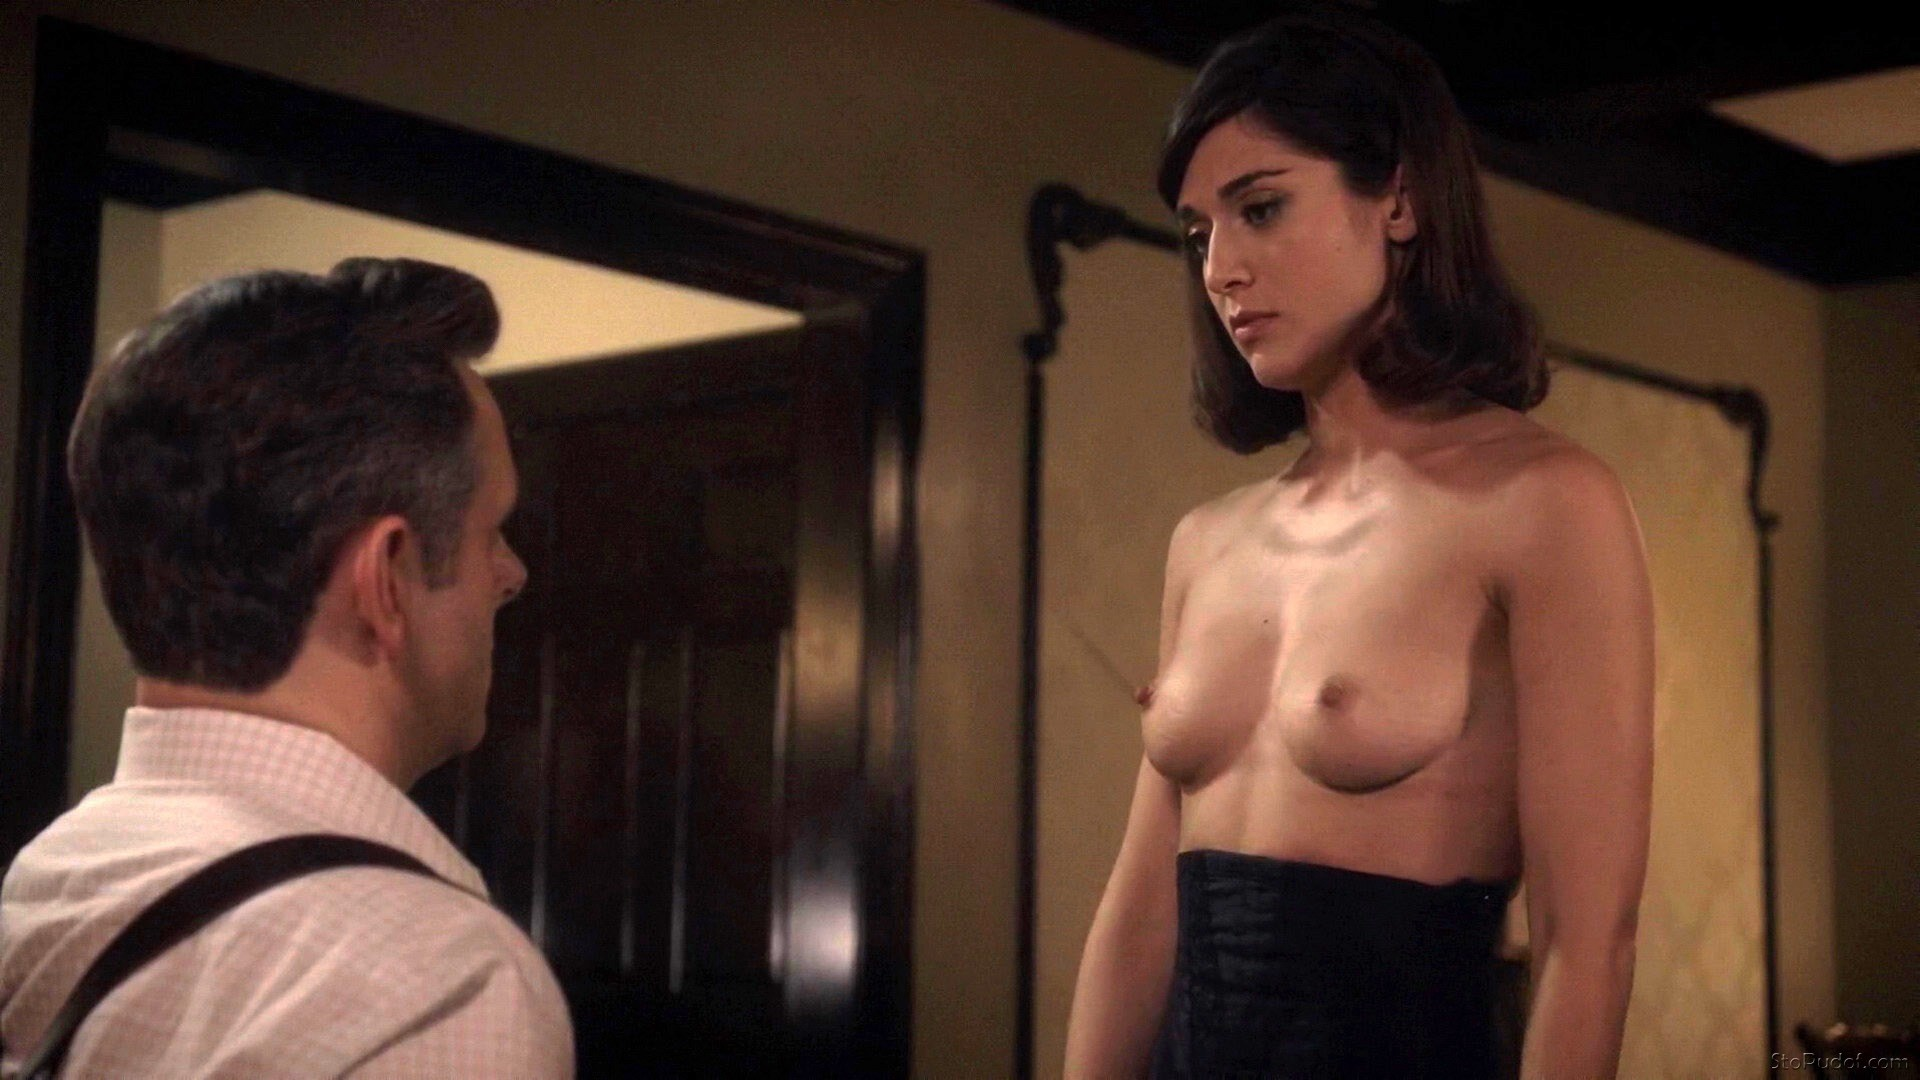 real naked pictures of Lizzy Caplan - UkPhotoSafari